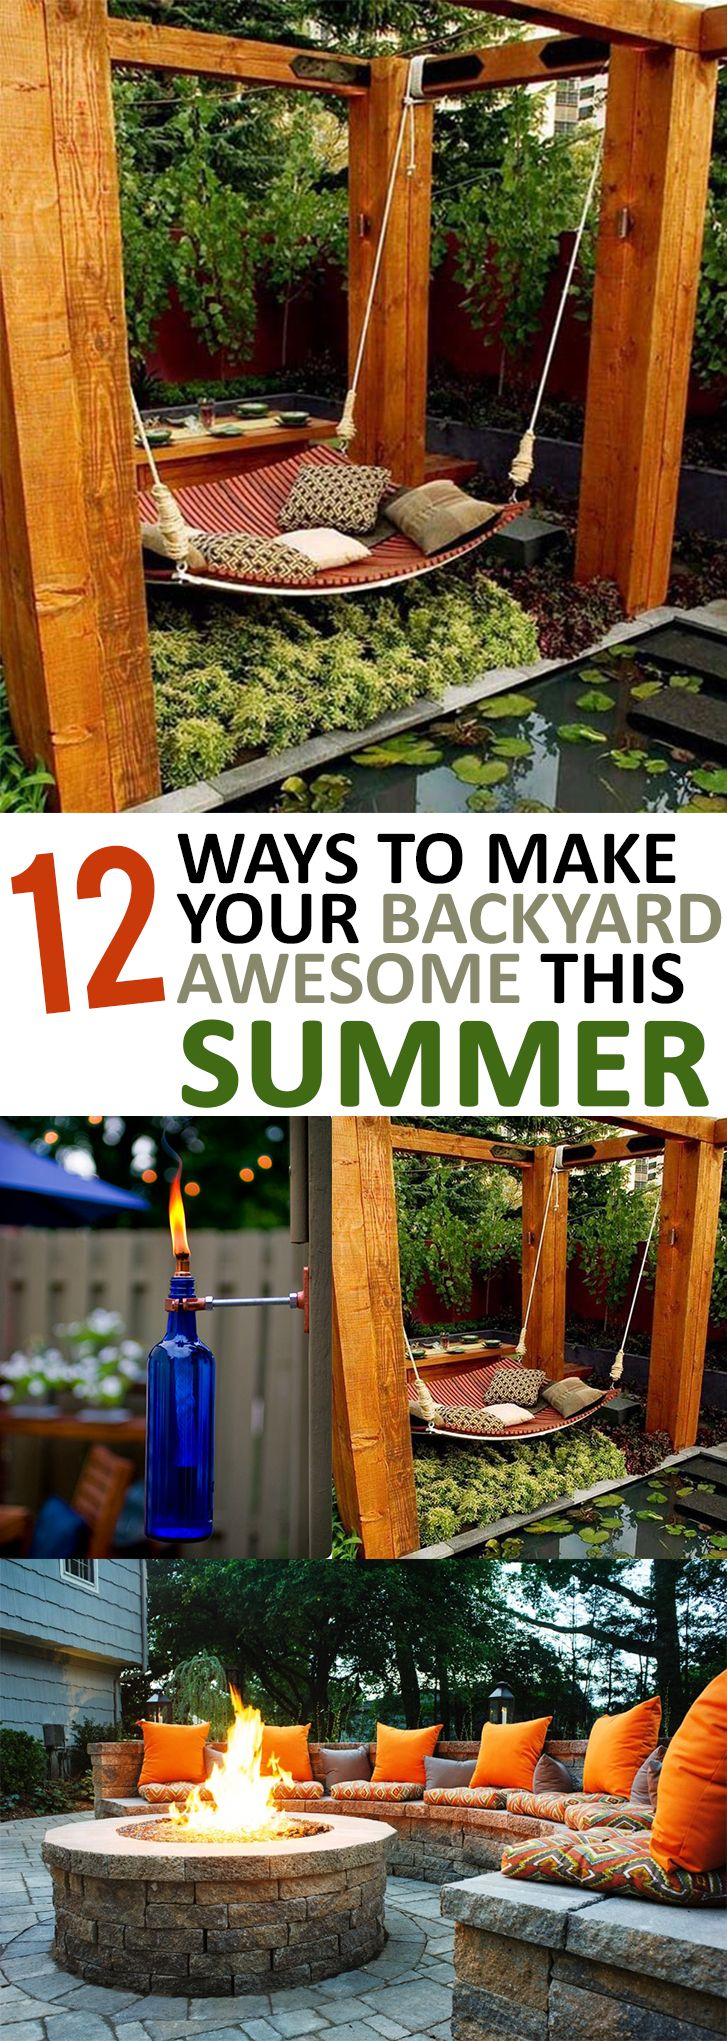 12 Ways to Make Your Backyard Awesome This Summer - Sunlit ...